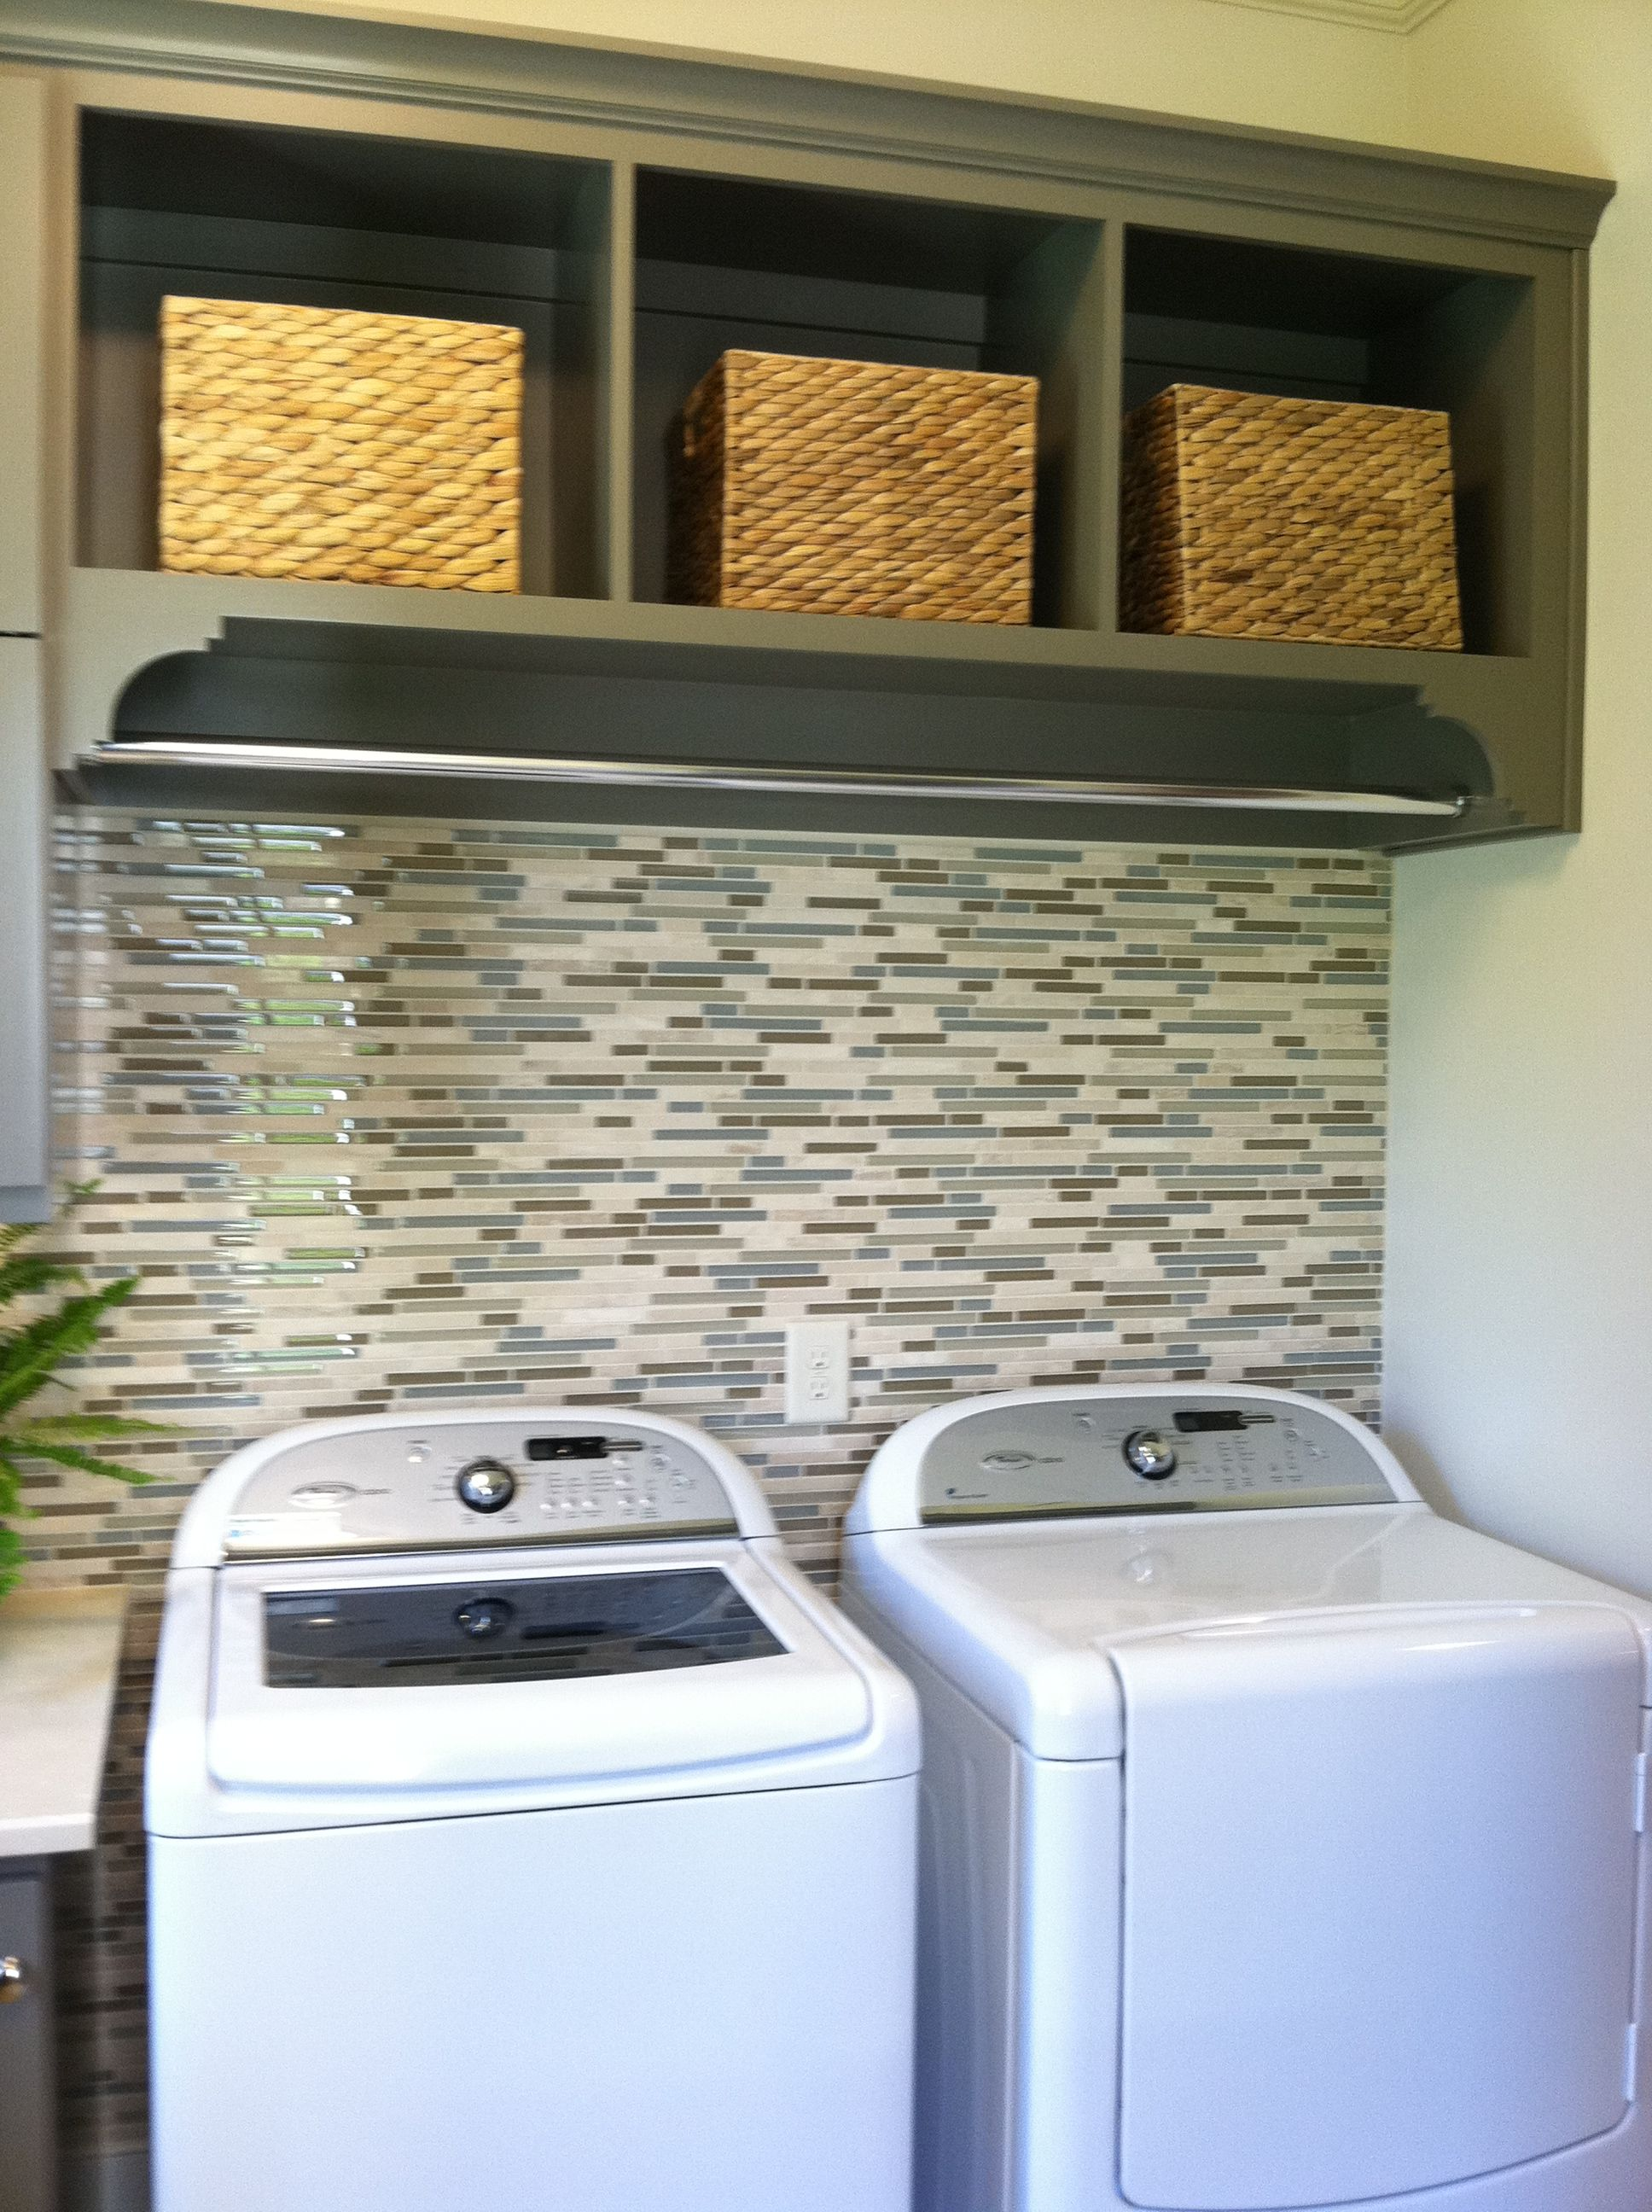 pictures of kitchen tile backsplash i the tile backsplash idea the washer amp dryer 7470